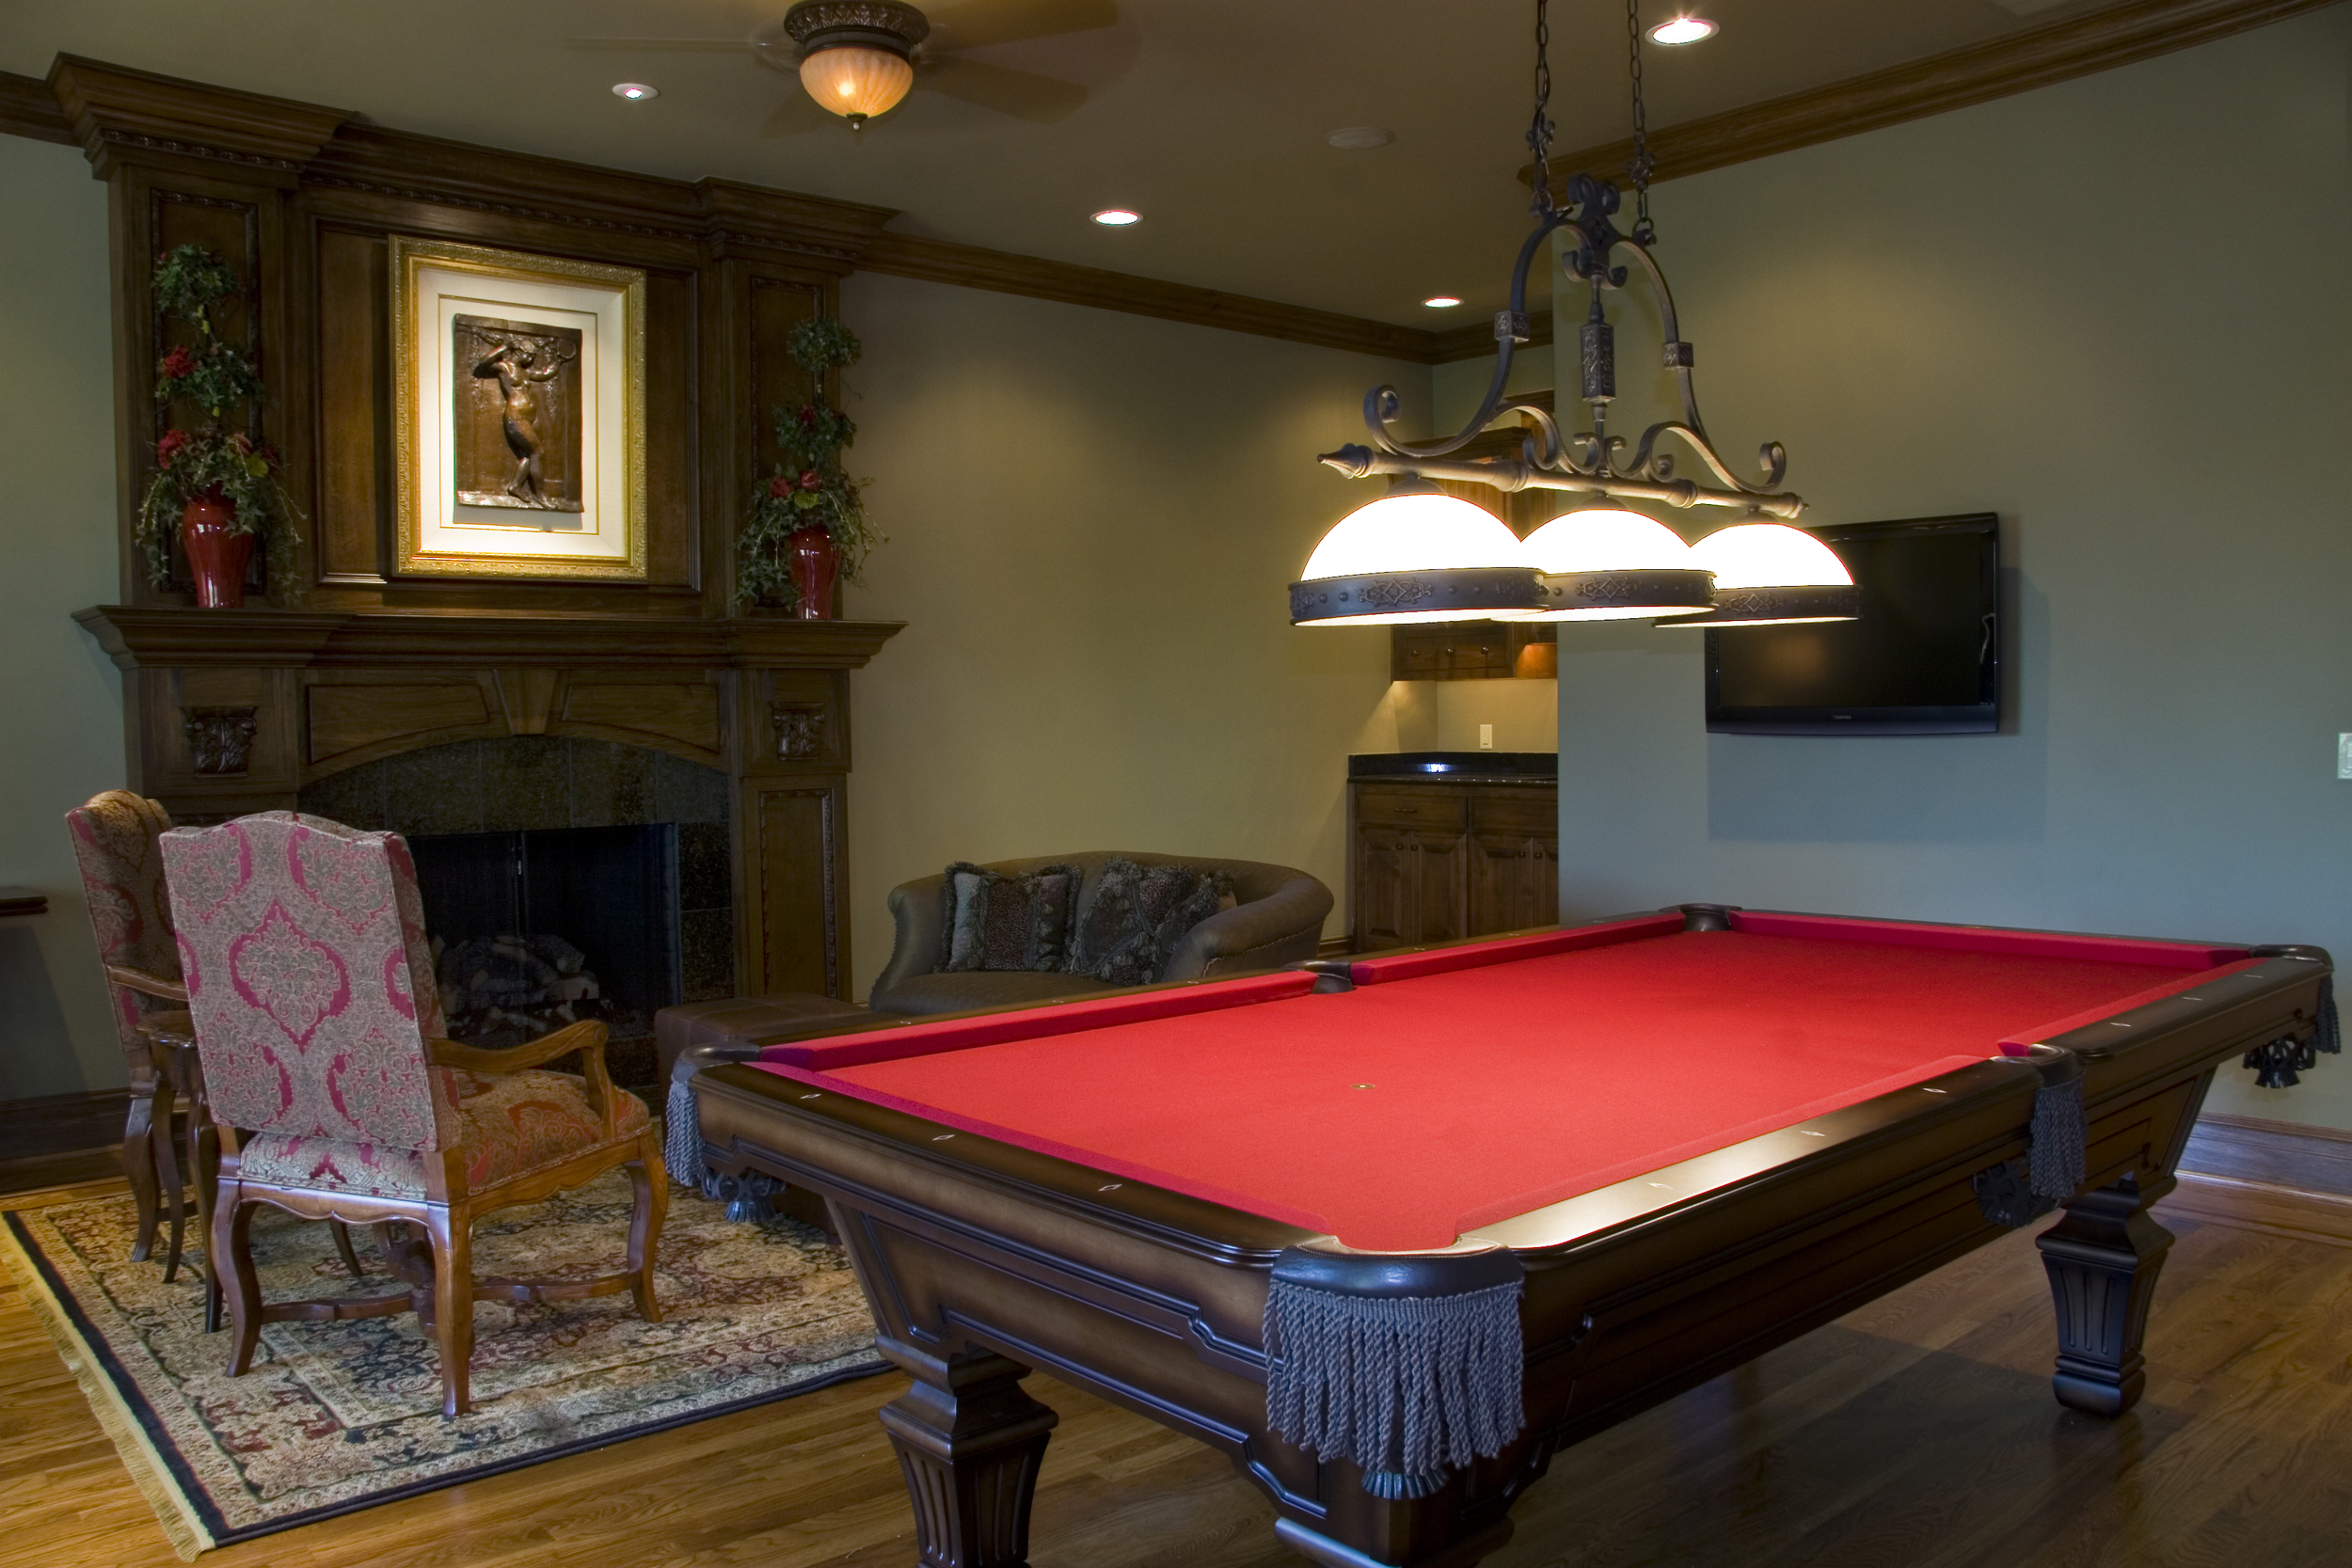 pool table6255.jpg